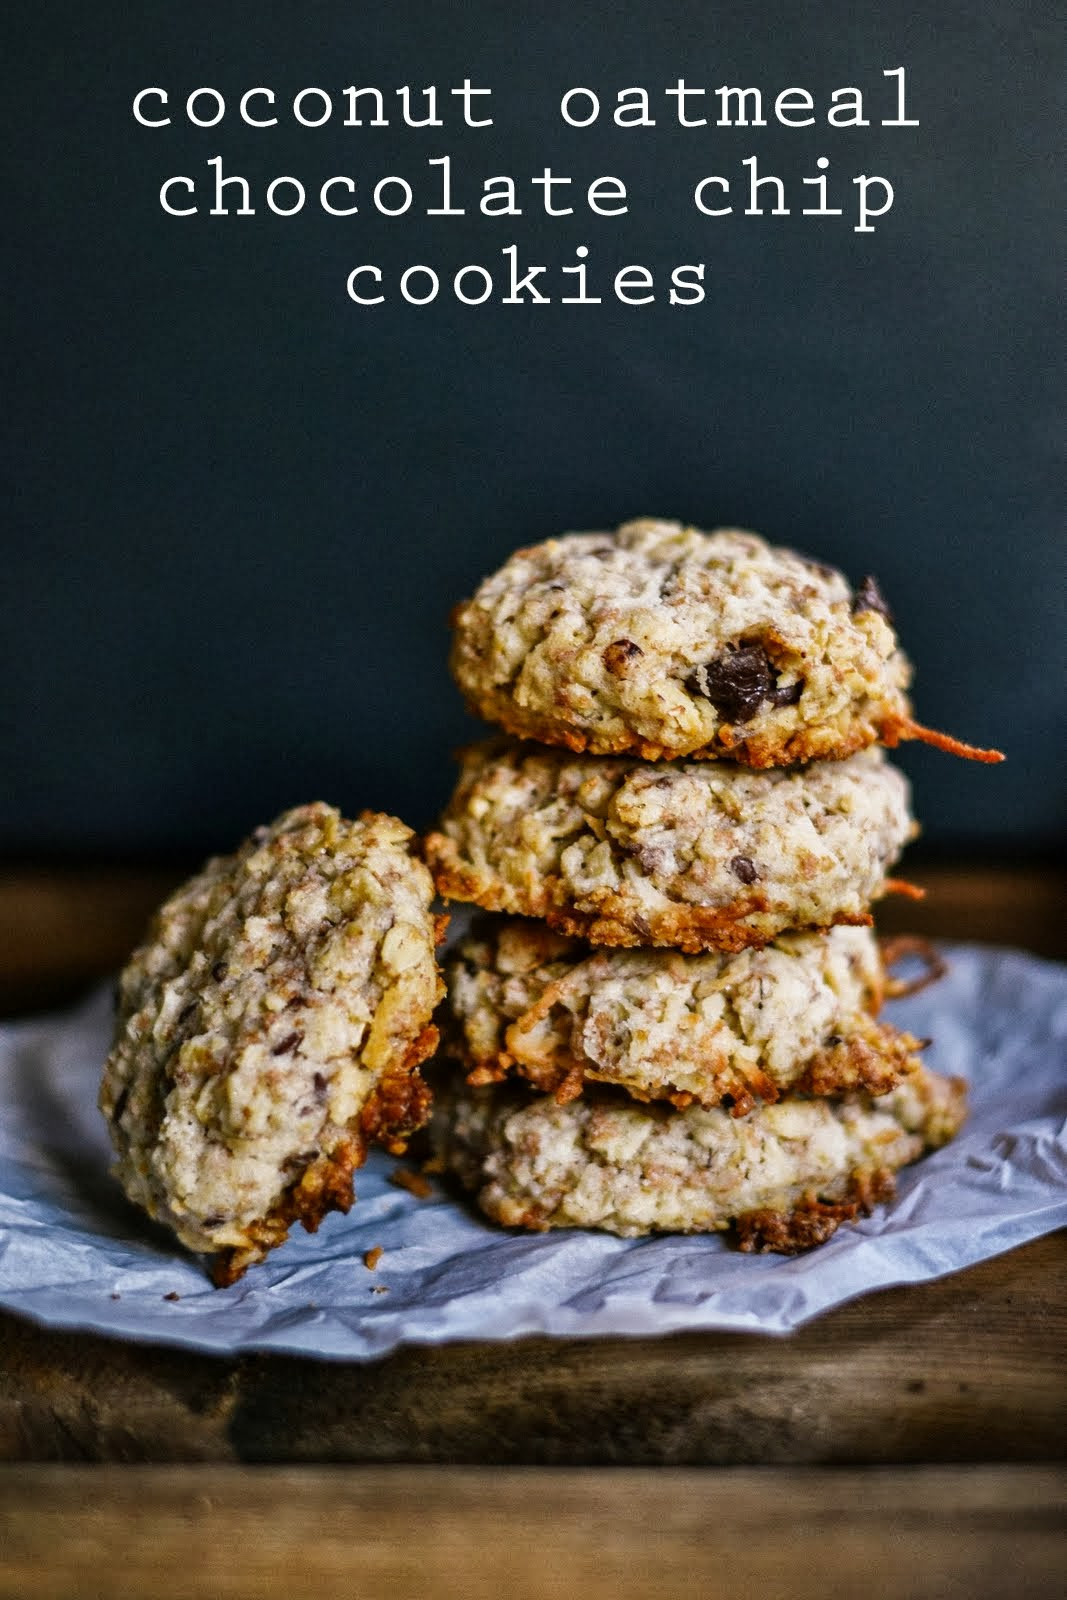 Healthy Oatmeal Coconut Chocolate Chip Cookies  p s ♡ coconut oatmeal chocolate chip cookies